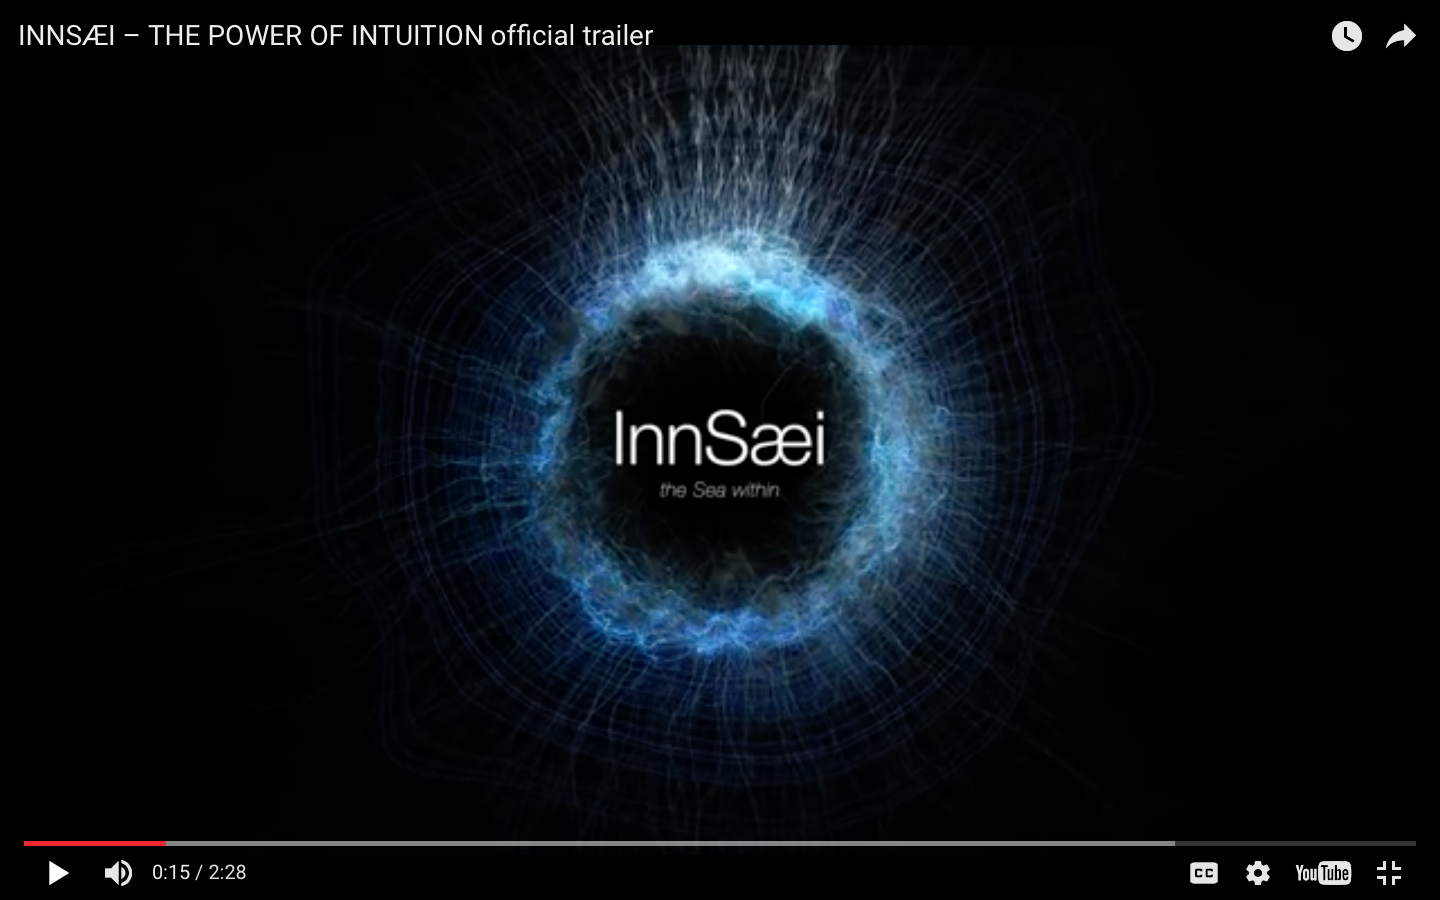 InnSaei, The Power of Intuition, The Sea Within, Trailer